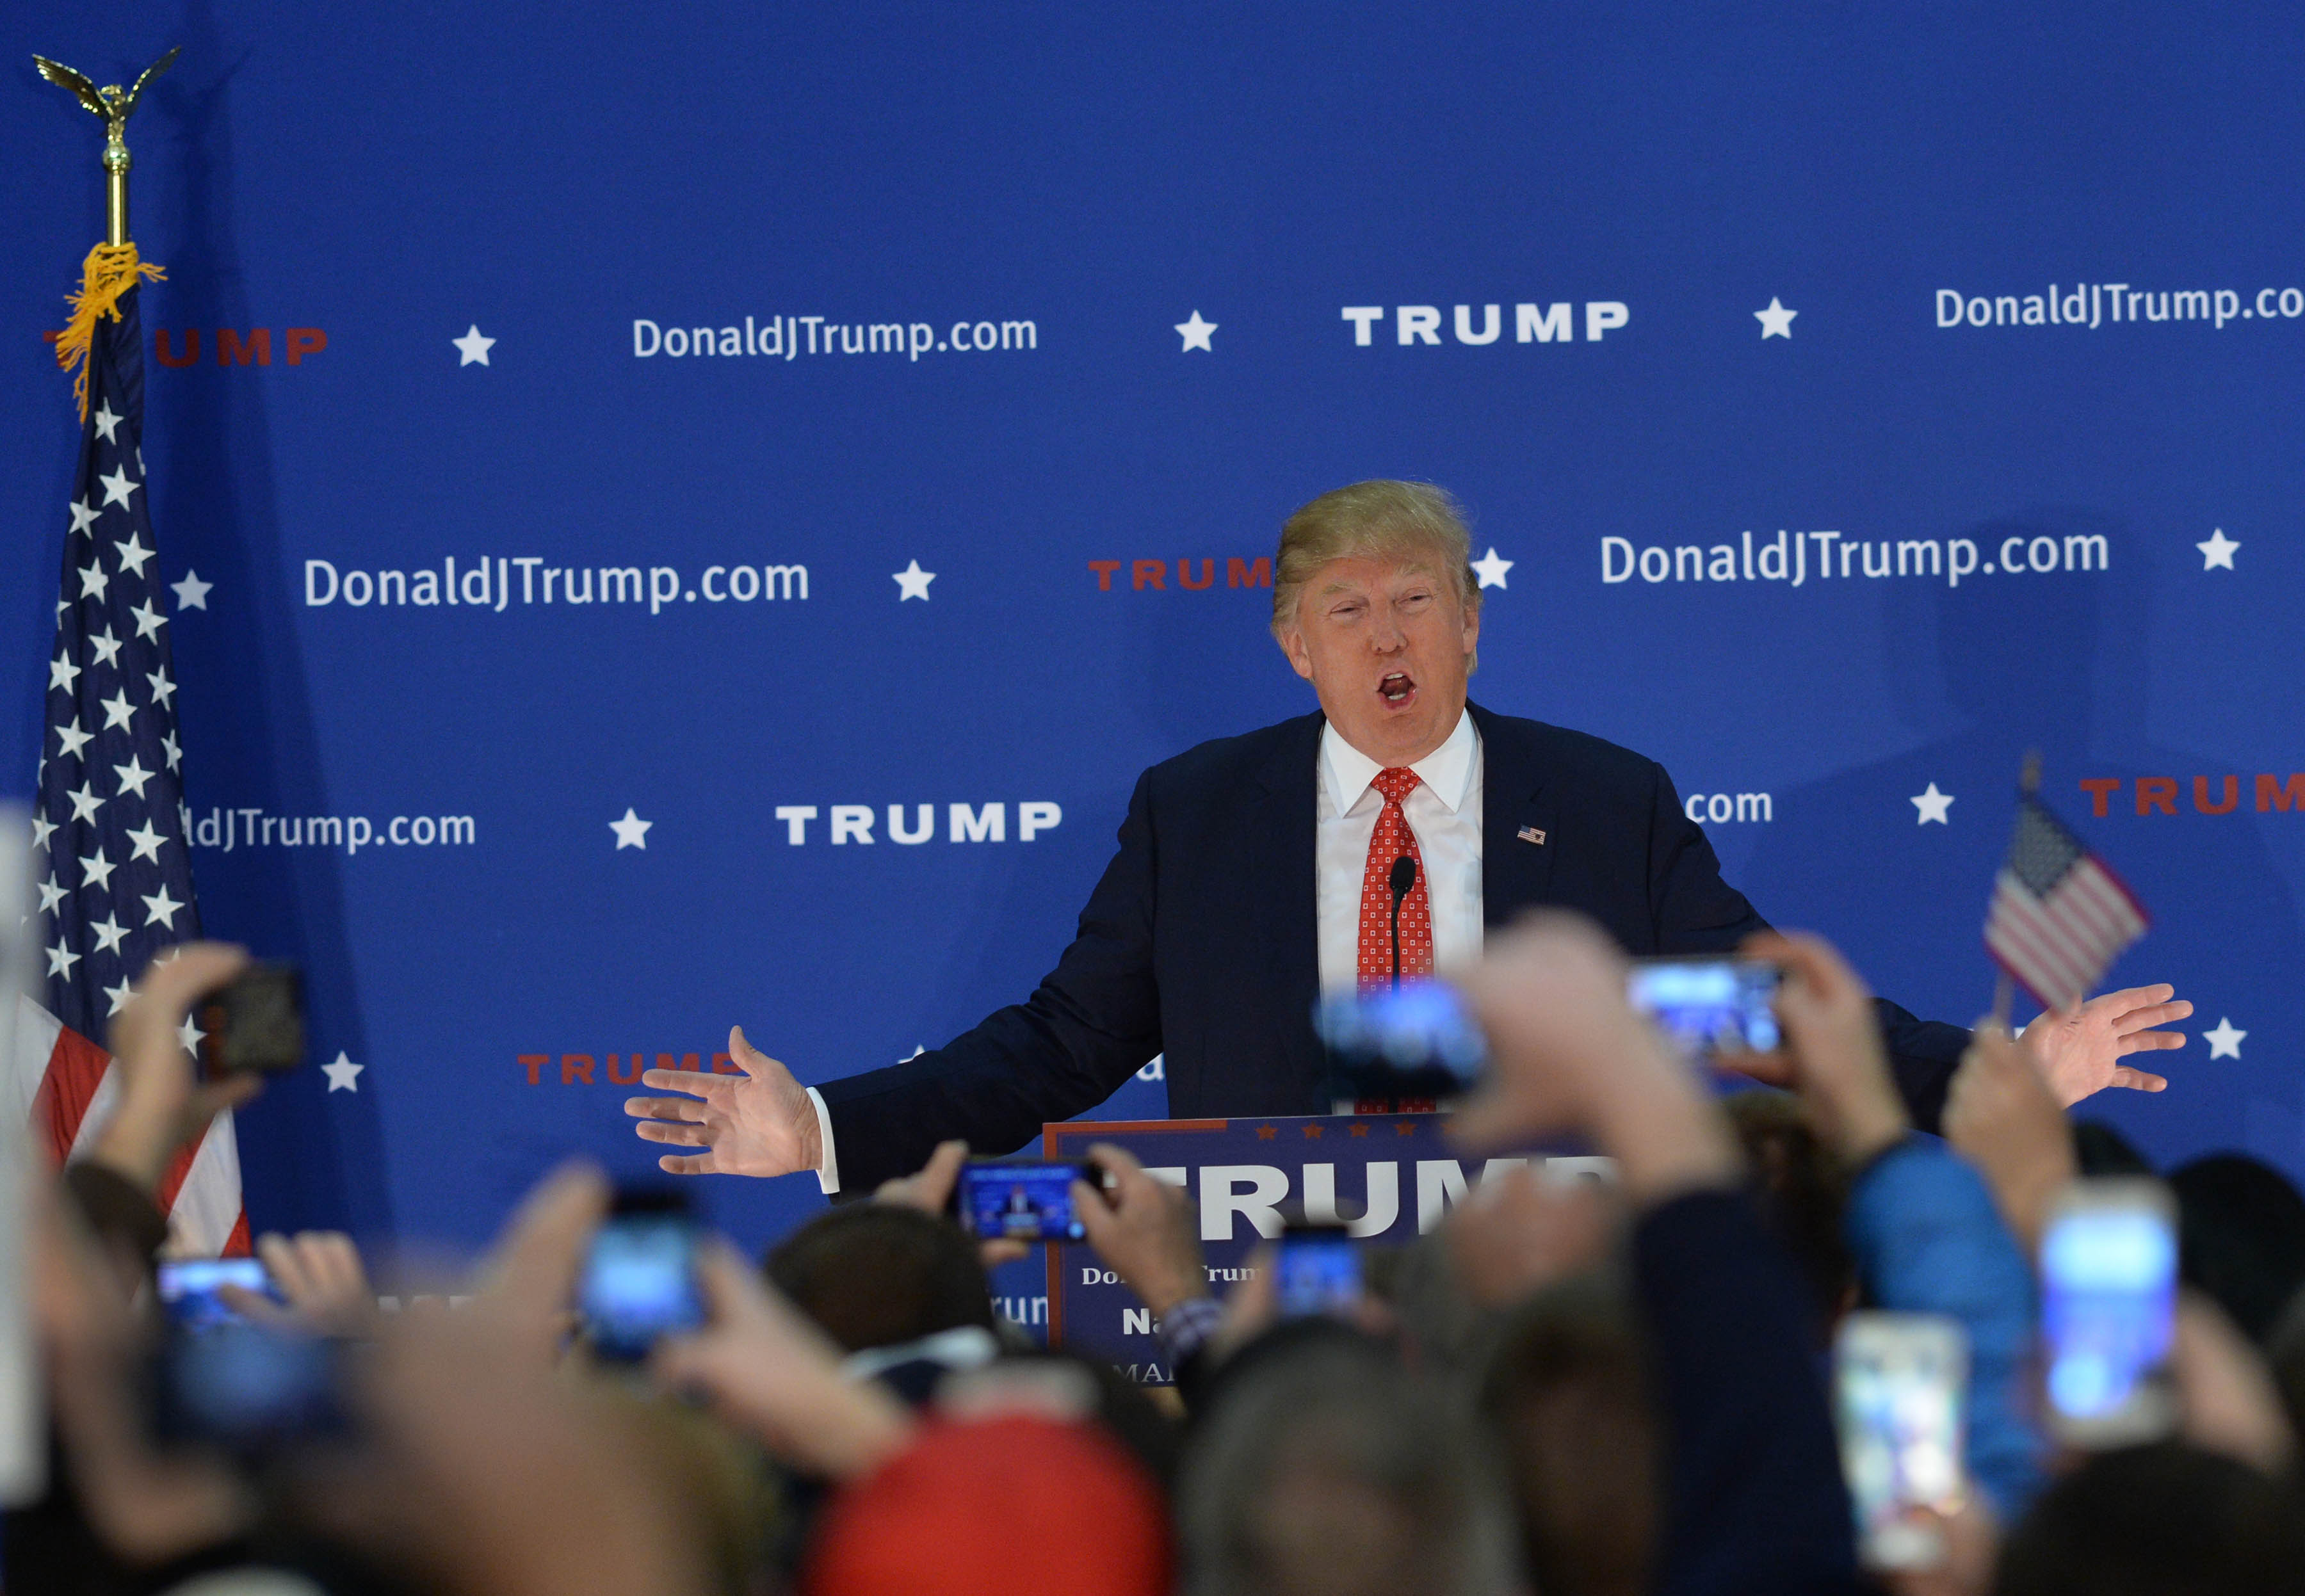 Republican Presidential Candidate Donald Trump Campaigns In Nashua, New Hampshire